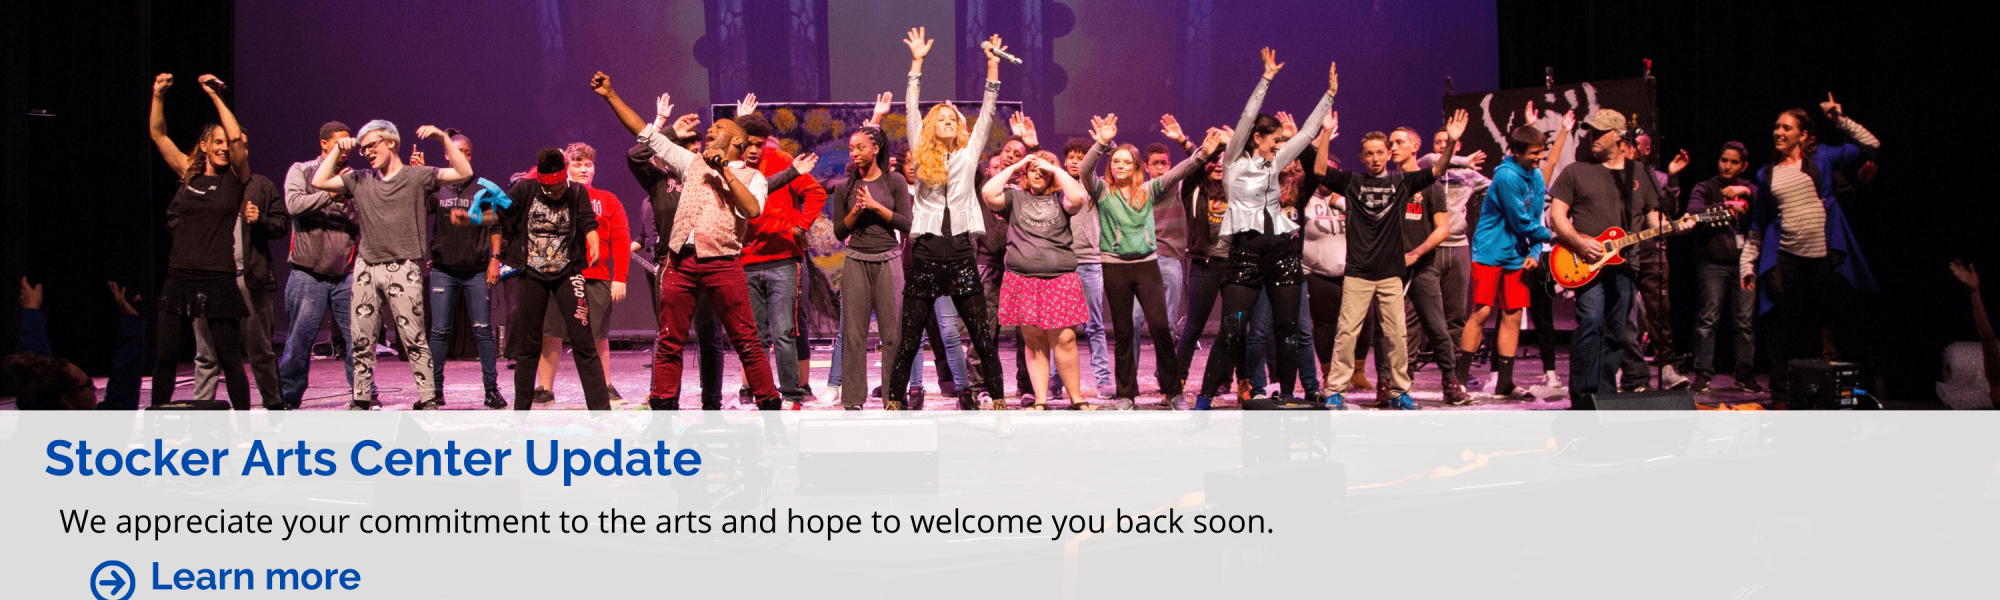 Stocker Arts Center Update - We appreciate your commitment to the arts and hope to welcome you back soon. Learn more.